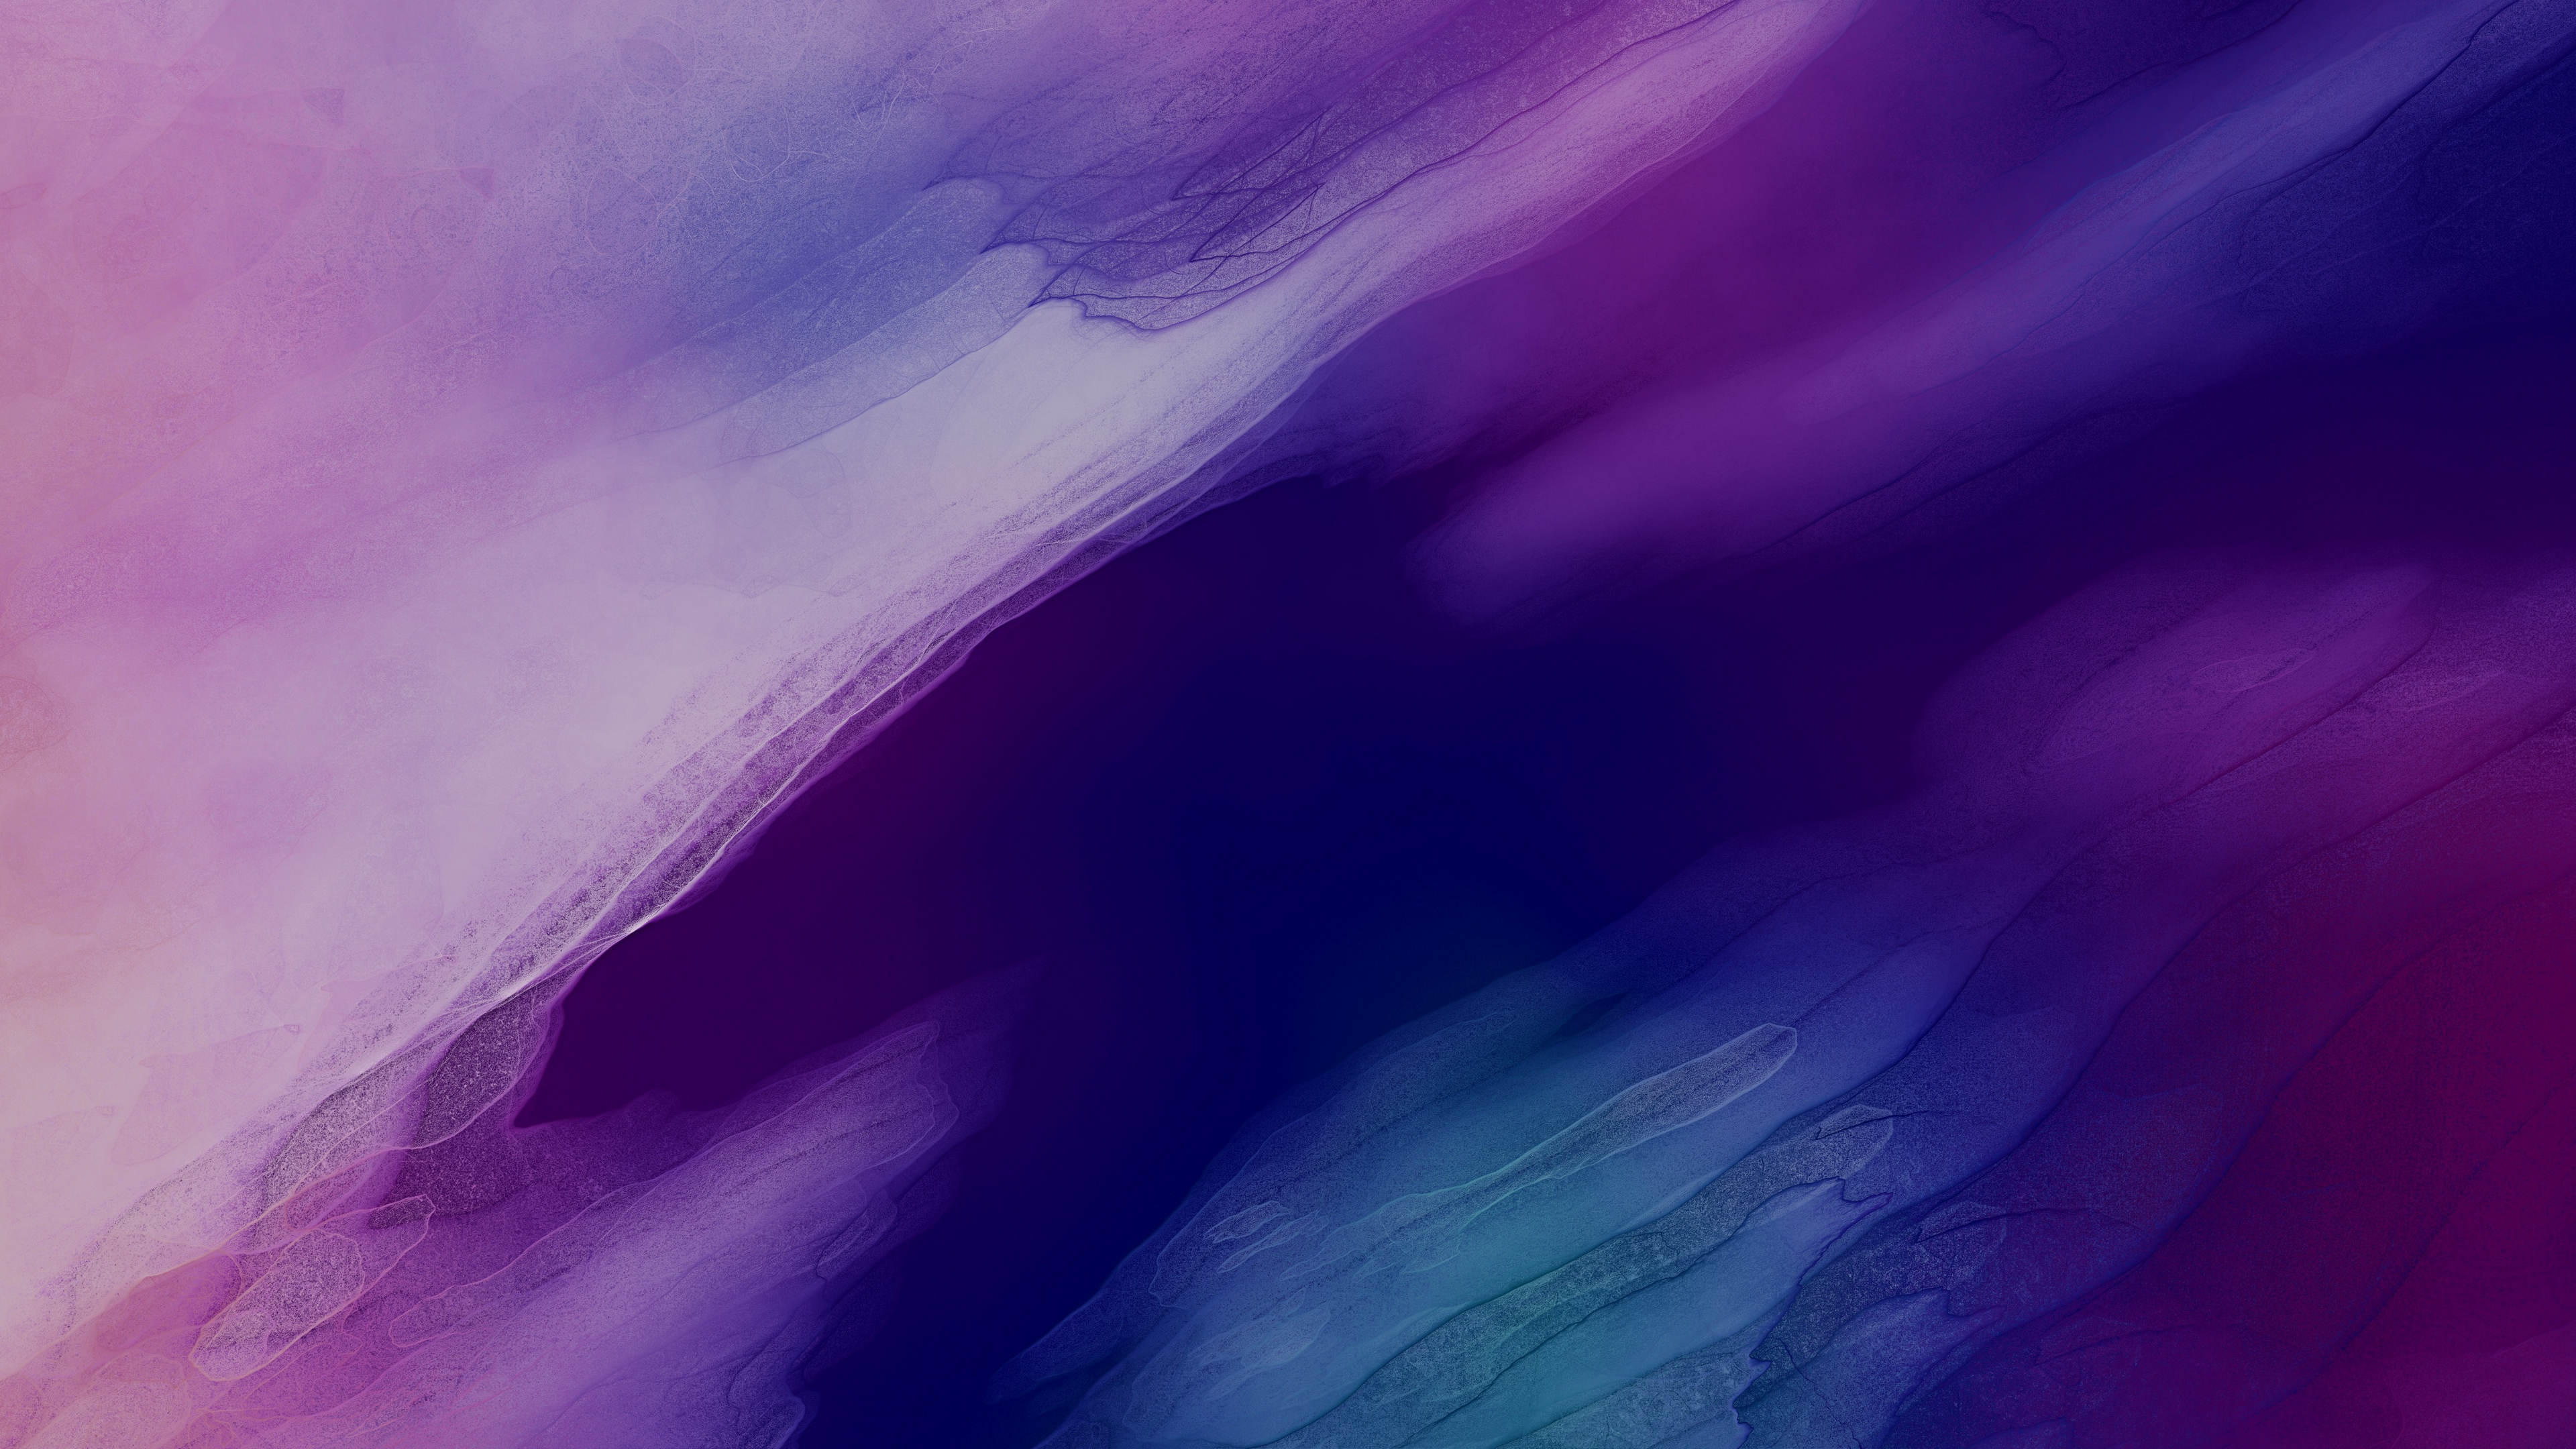 Wallpaper 4k Stains Purple Gradient Colorful 4k Gradient